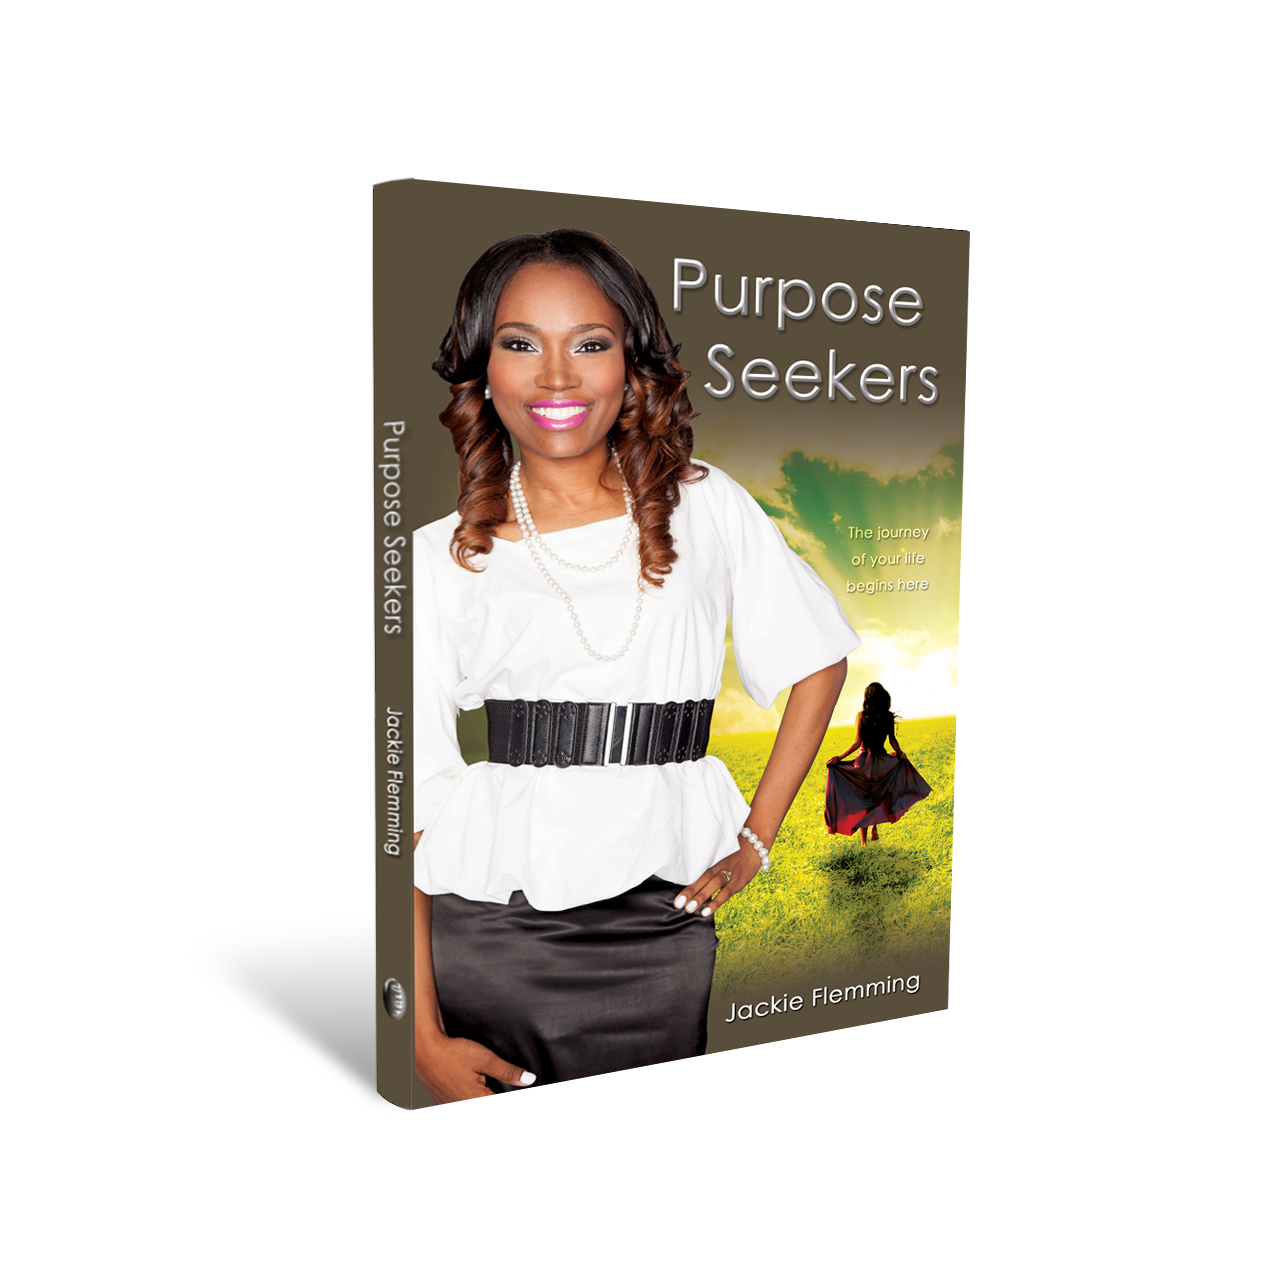 Purpose Seekers